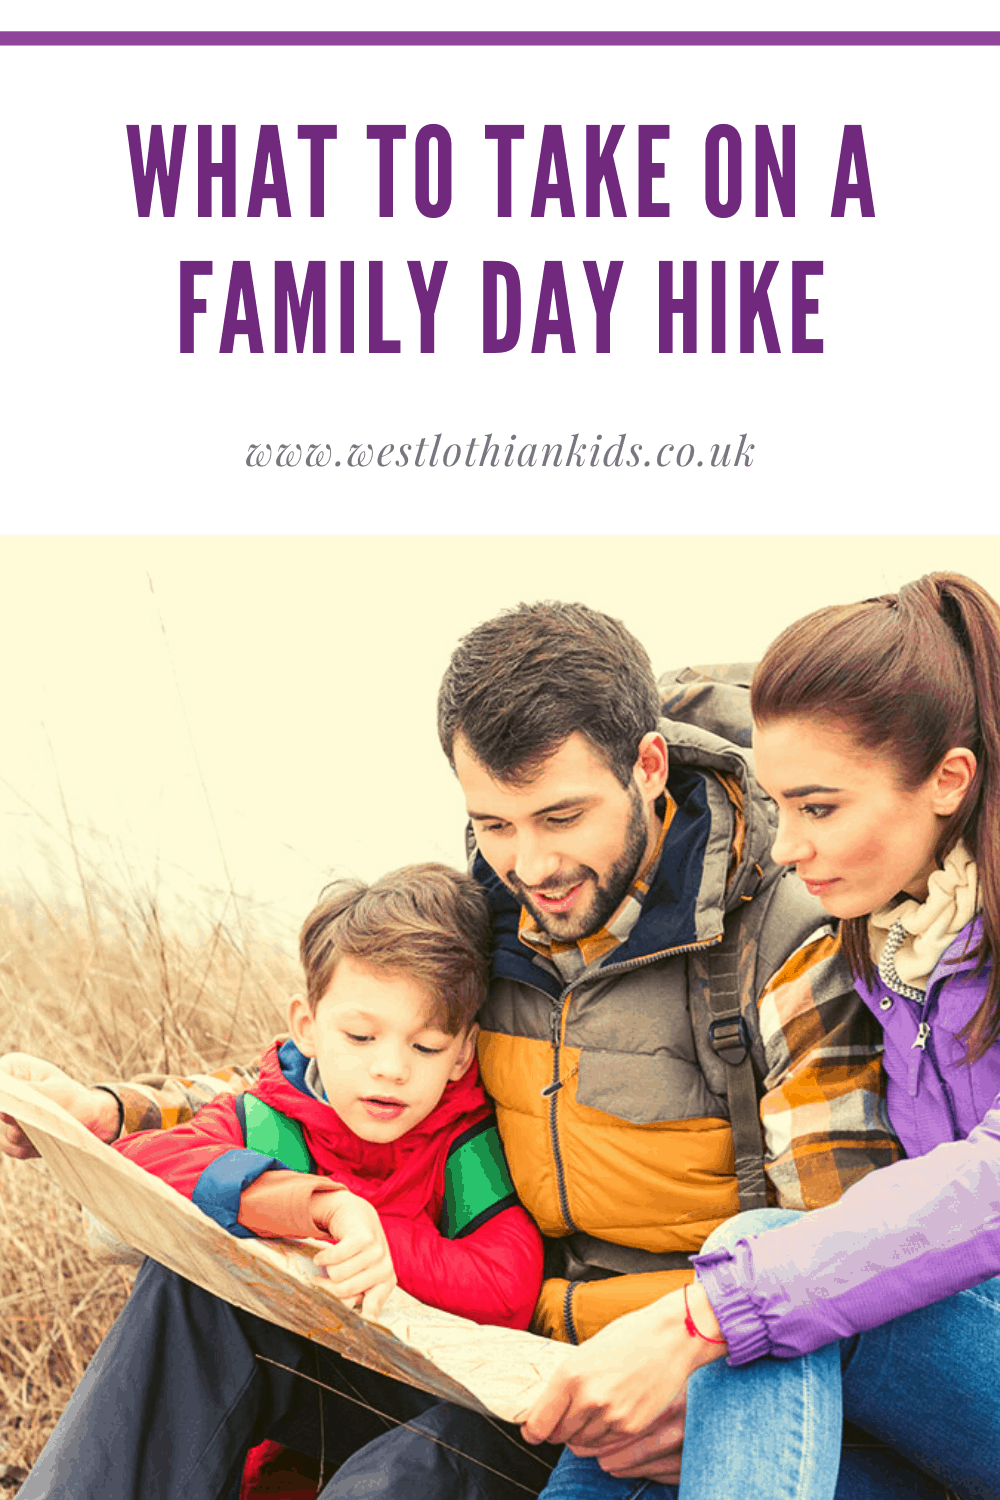 What to pack on a family day hike